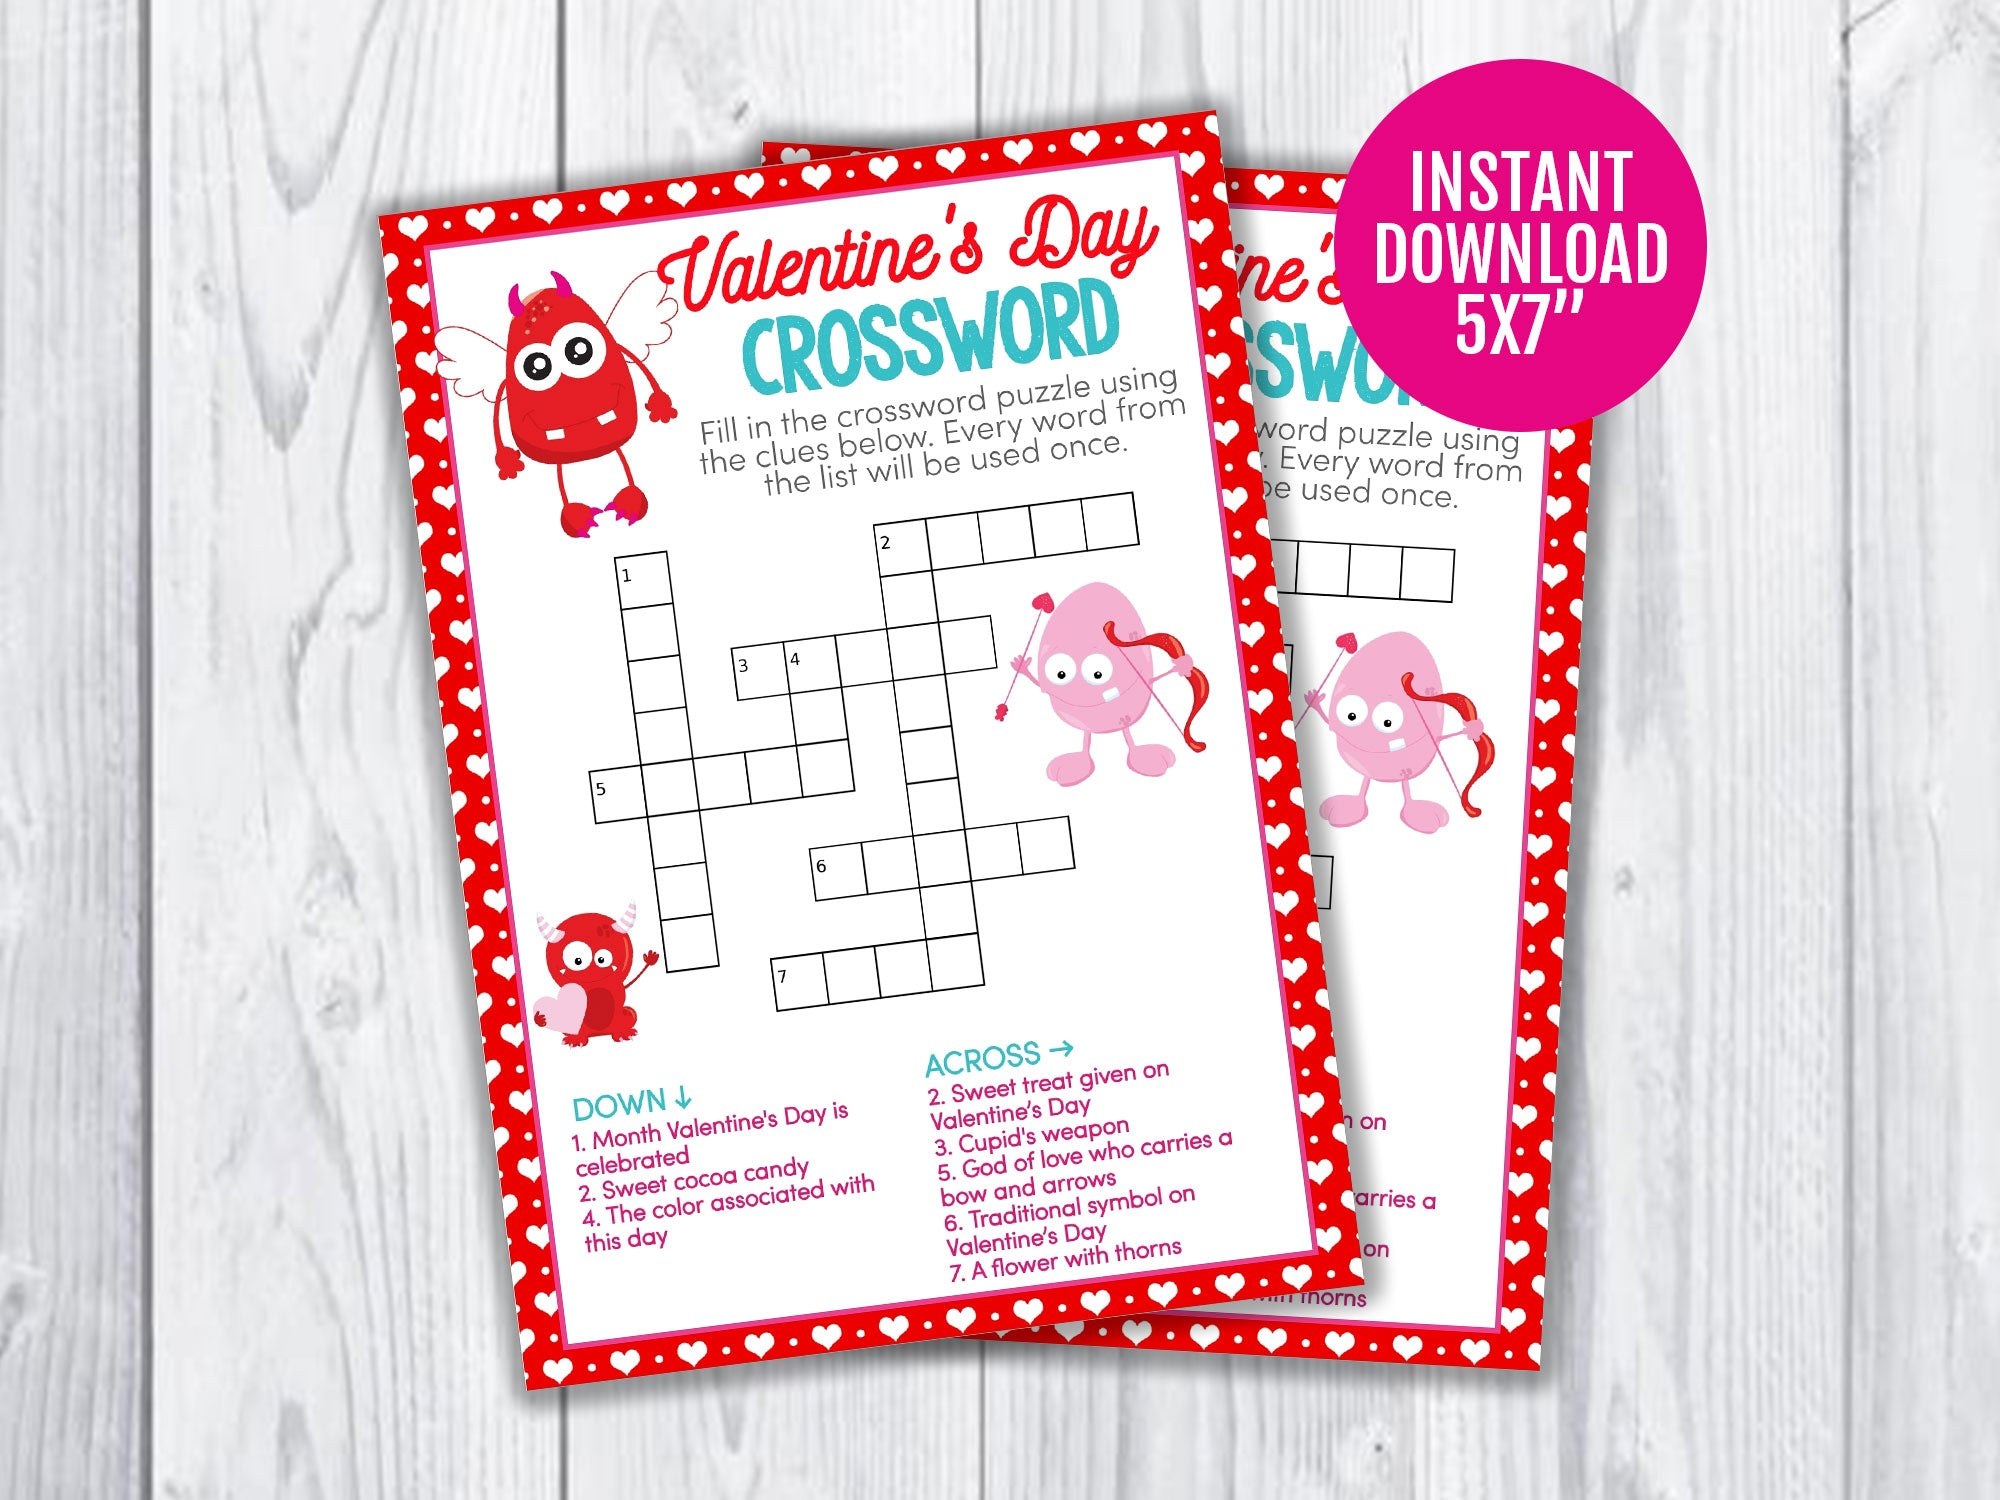 Valentine's Day Crossword Puzzle Printable Game for Kids, Monster Classroom Games and Activities, INSTANT DOWNLOAD - TitaTipsPrintables